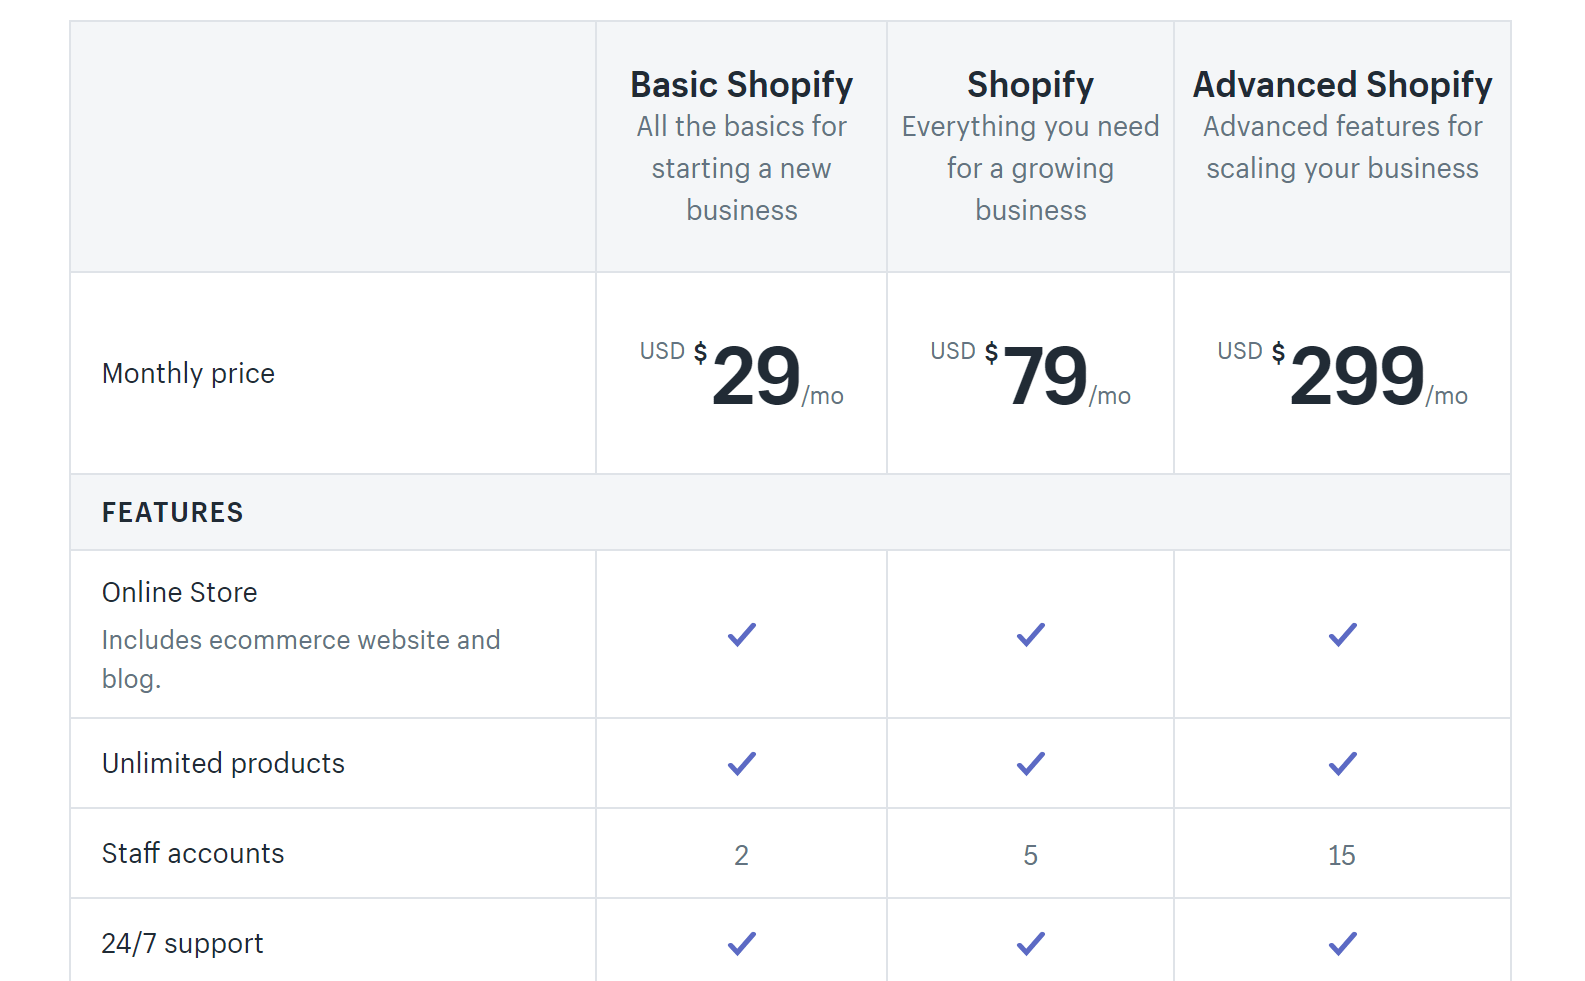 how much does an eCommerce website cost on Shopify